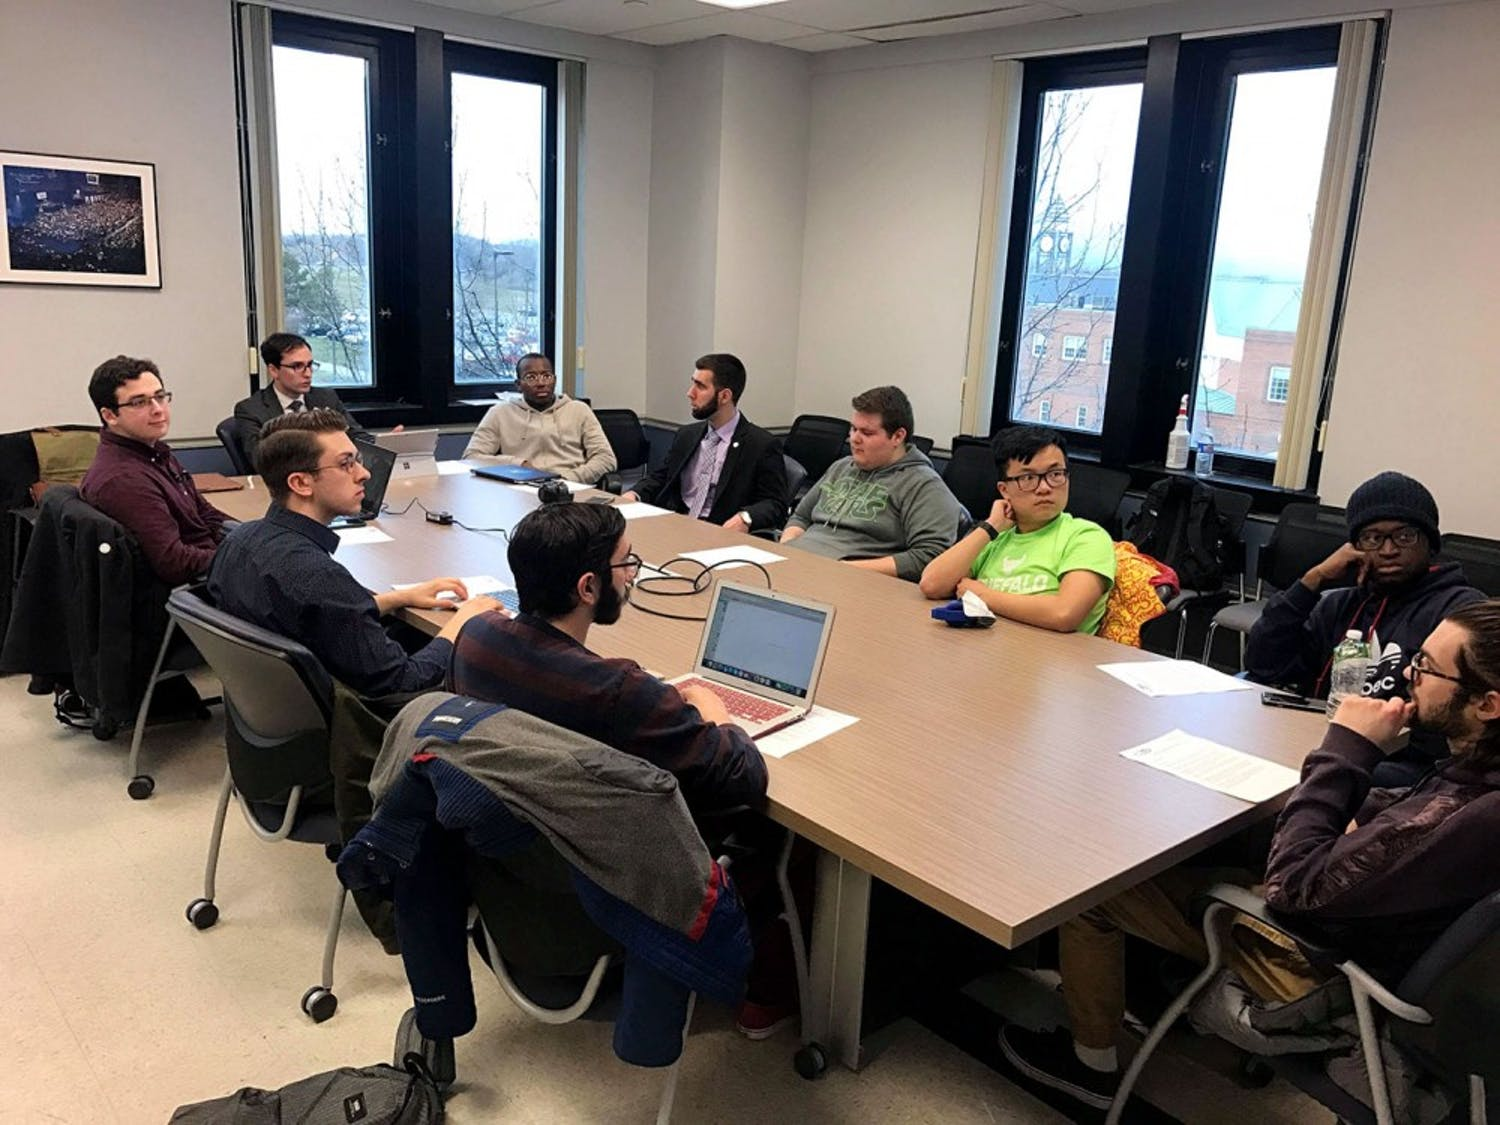 SA held an assembly meeting Thursday night to discuss a new Breathe Free Smoke Policy on campus with hopes President Tripathi will accept their suggested new Breathe Free Smoke Policy and implement it on campus.